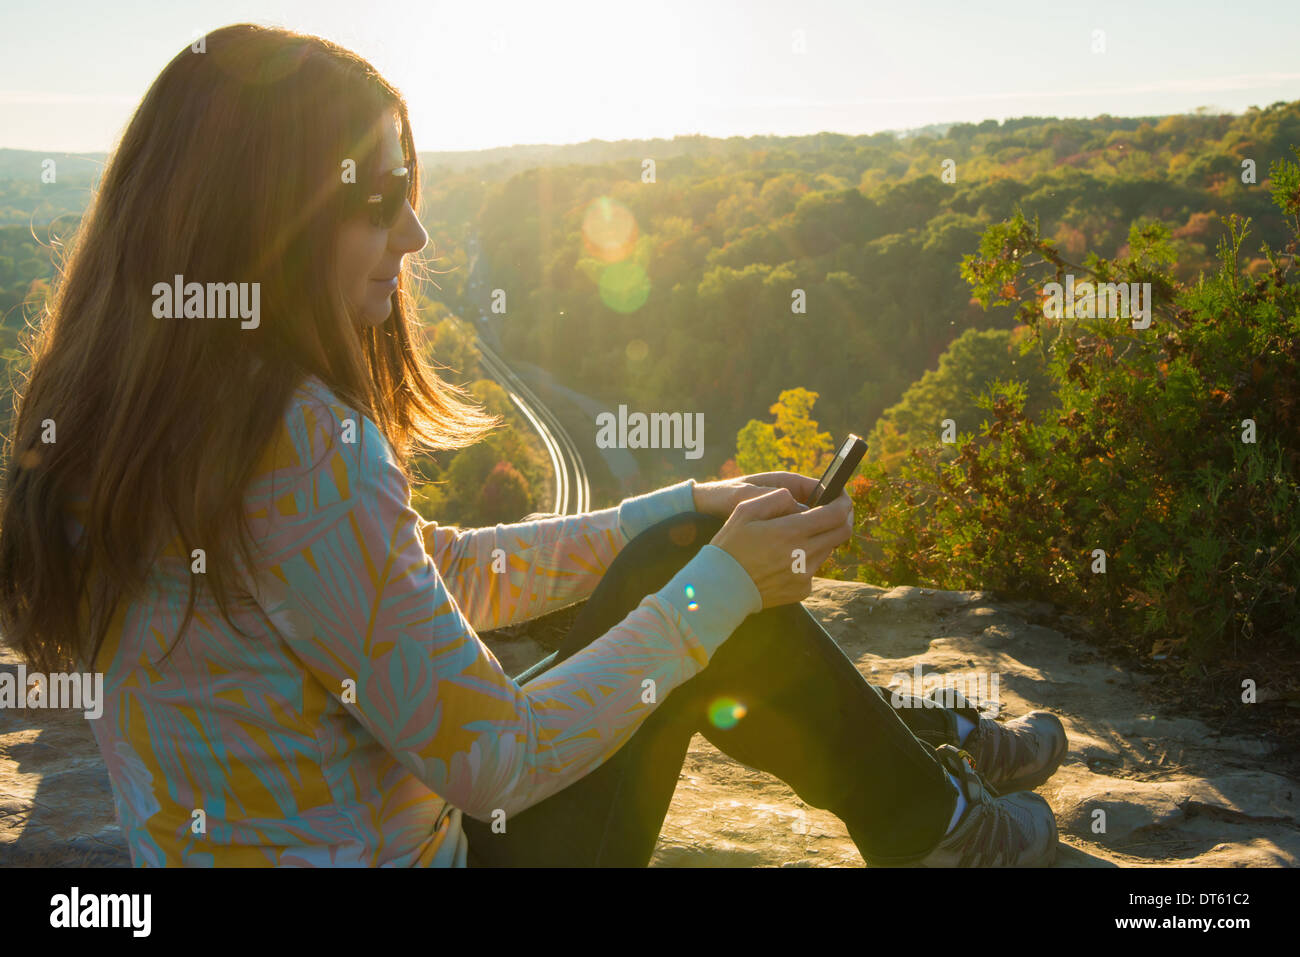 Mid adult woman sitting on elevated rock using mobile phone - Stock Image